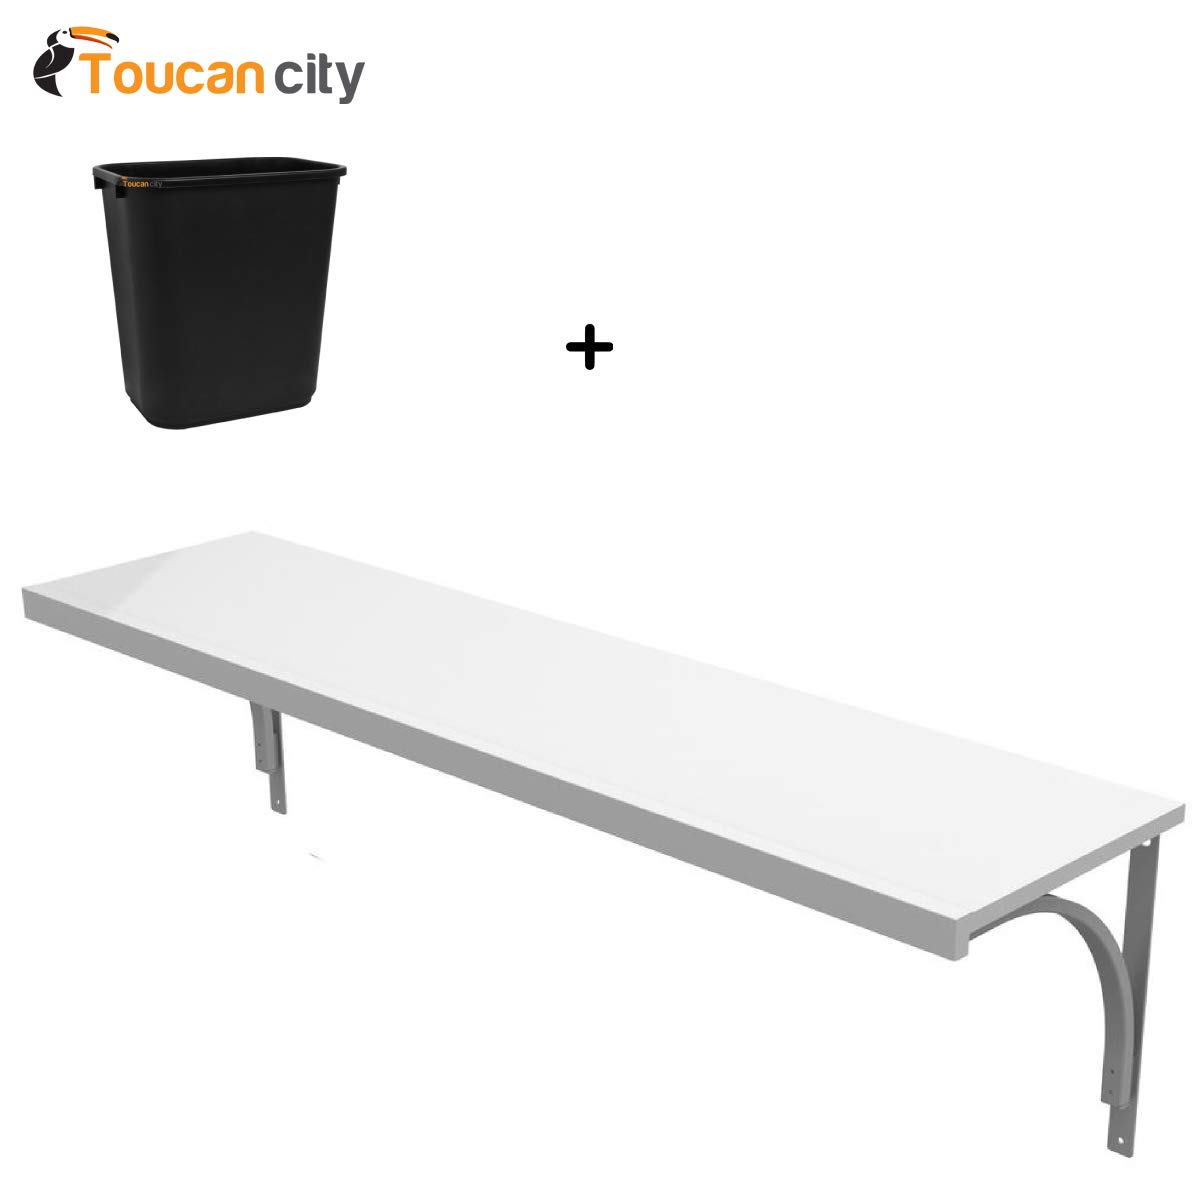 Toucan City 7 Gal Trash can and ClosetMaid 12 in x 72 in. Solid Wood Shelf Kit in White 1380